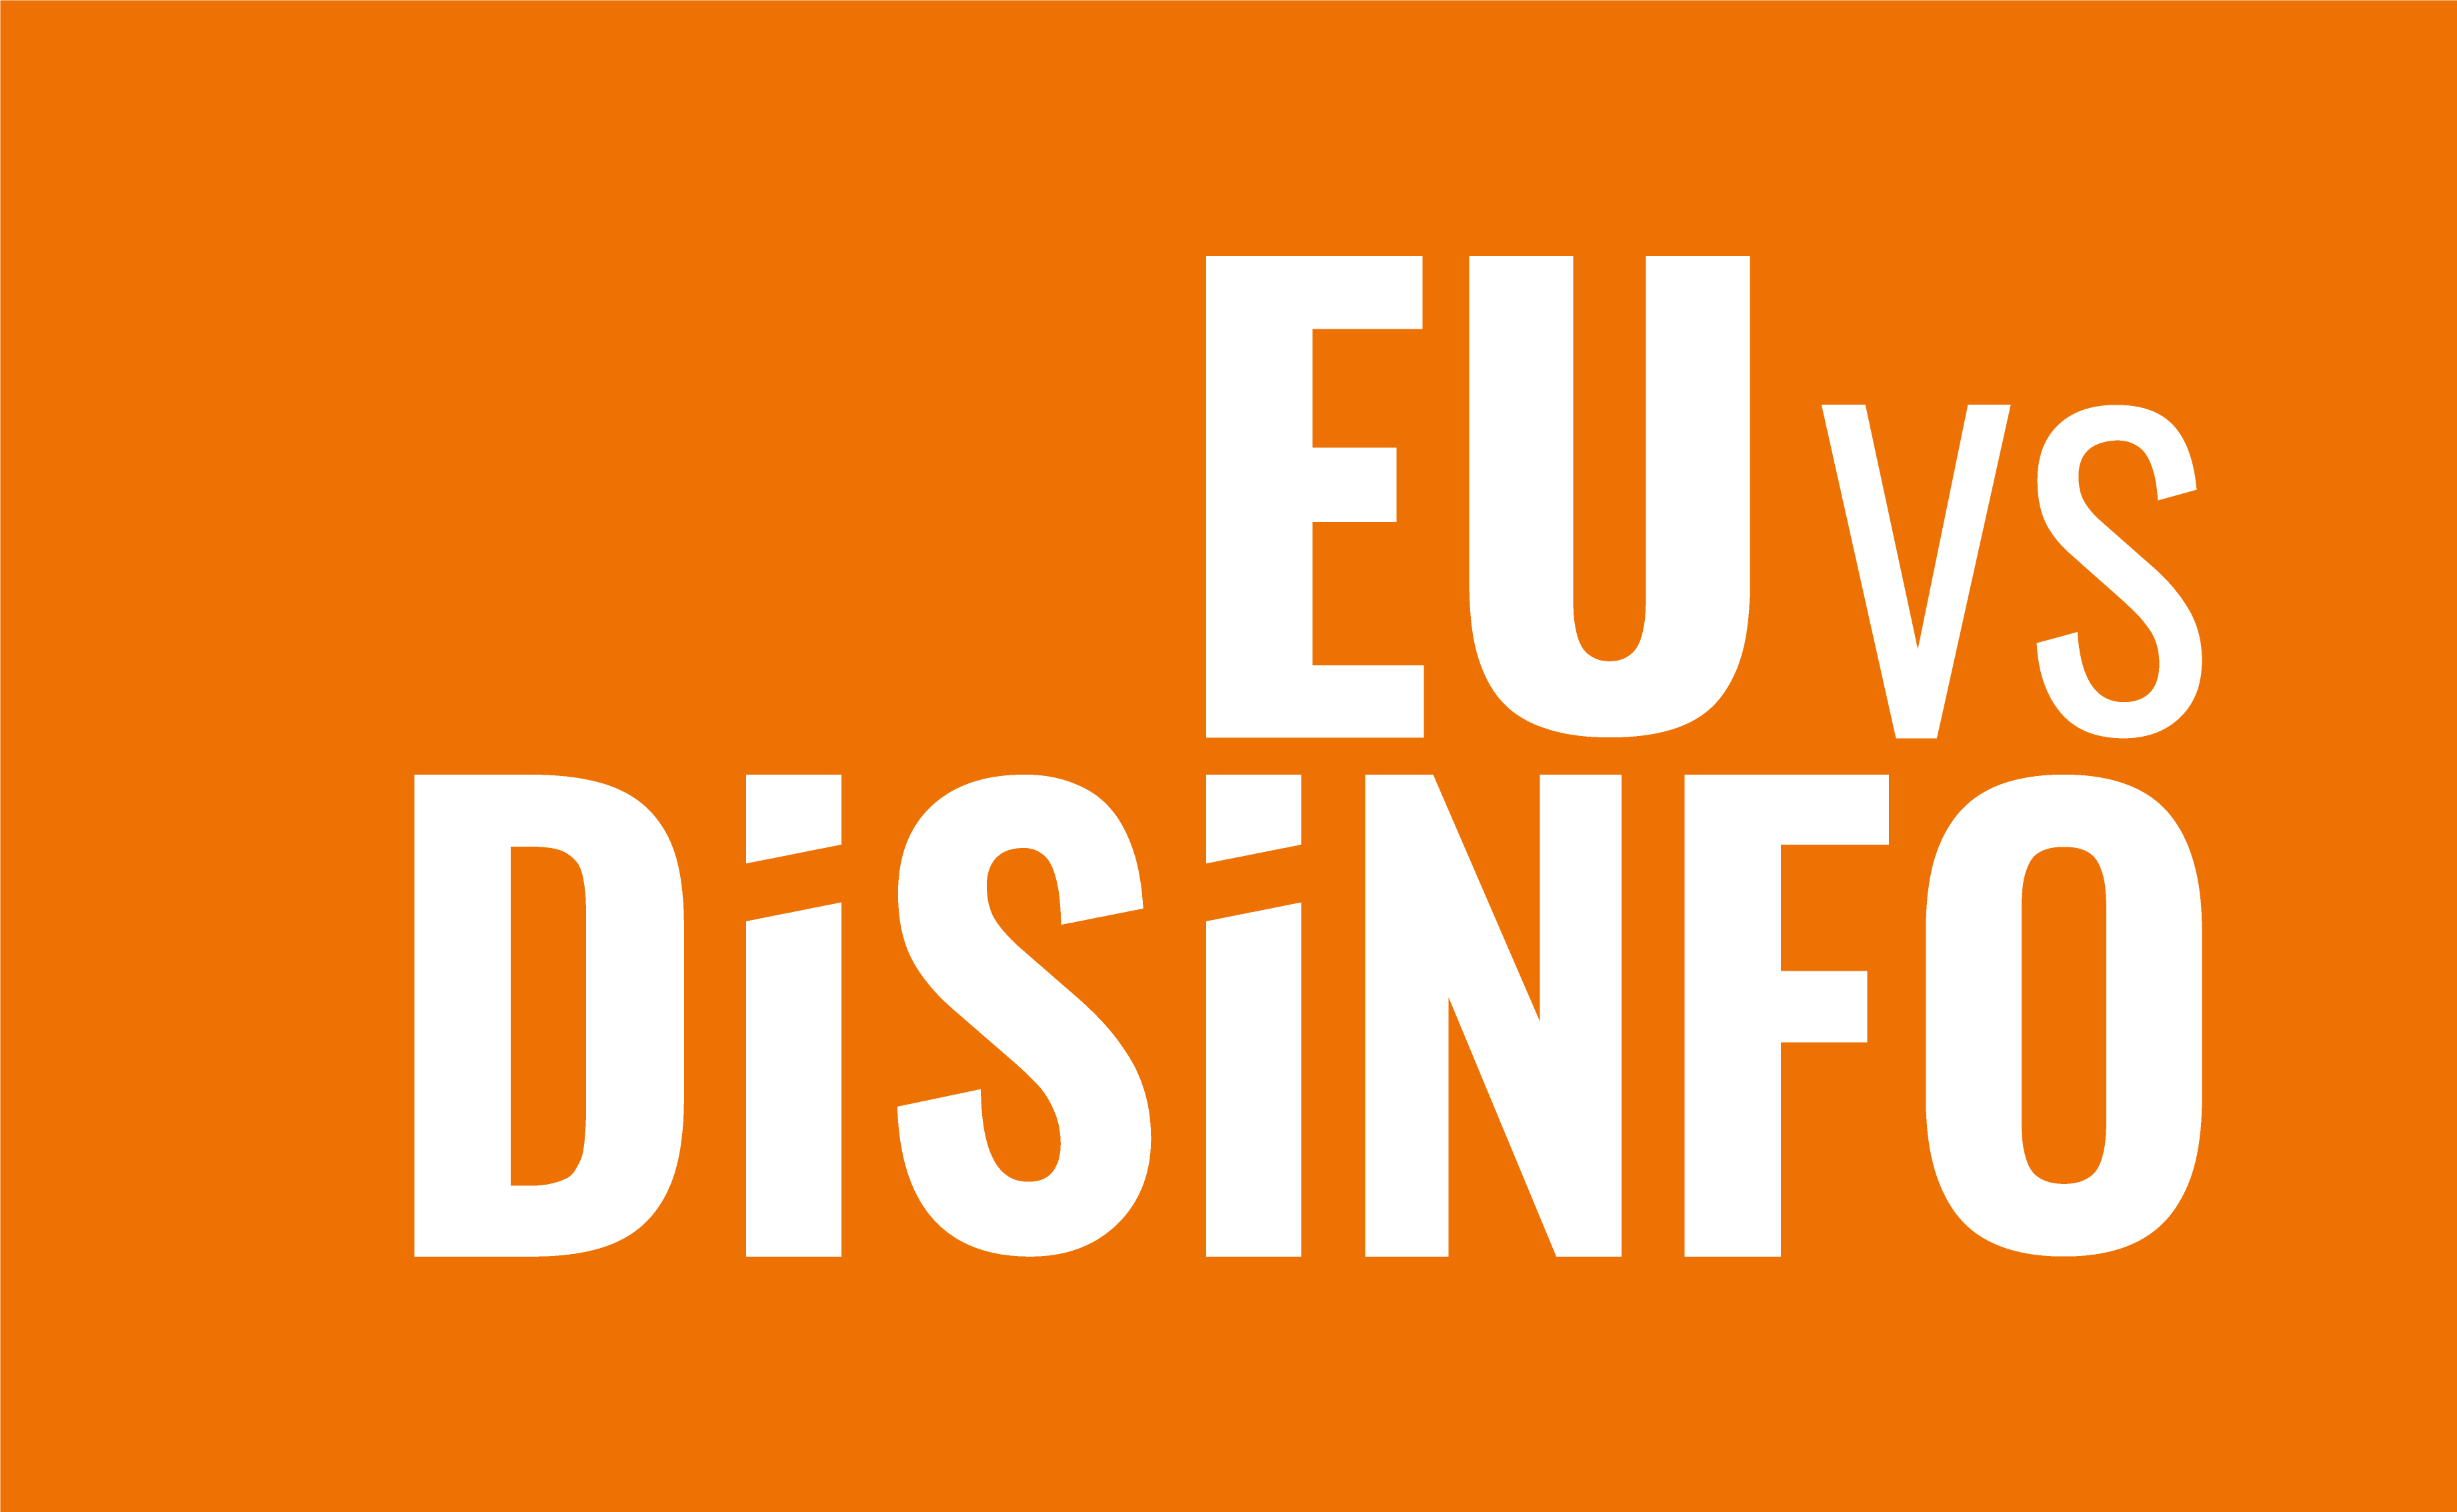 EU vs DISINFORMATION - home